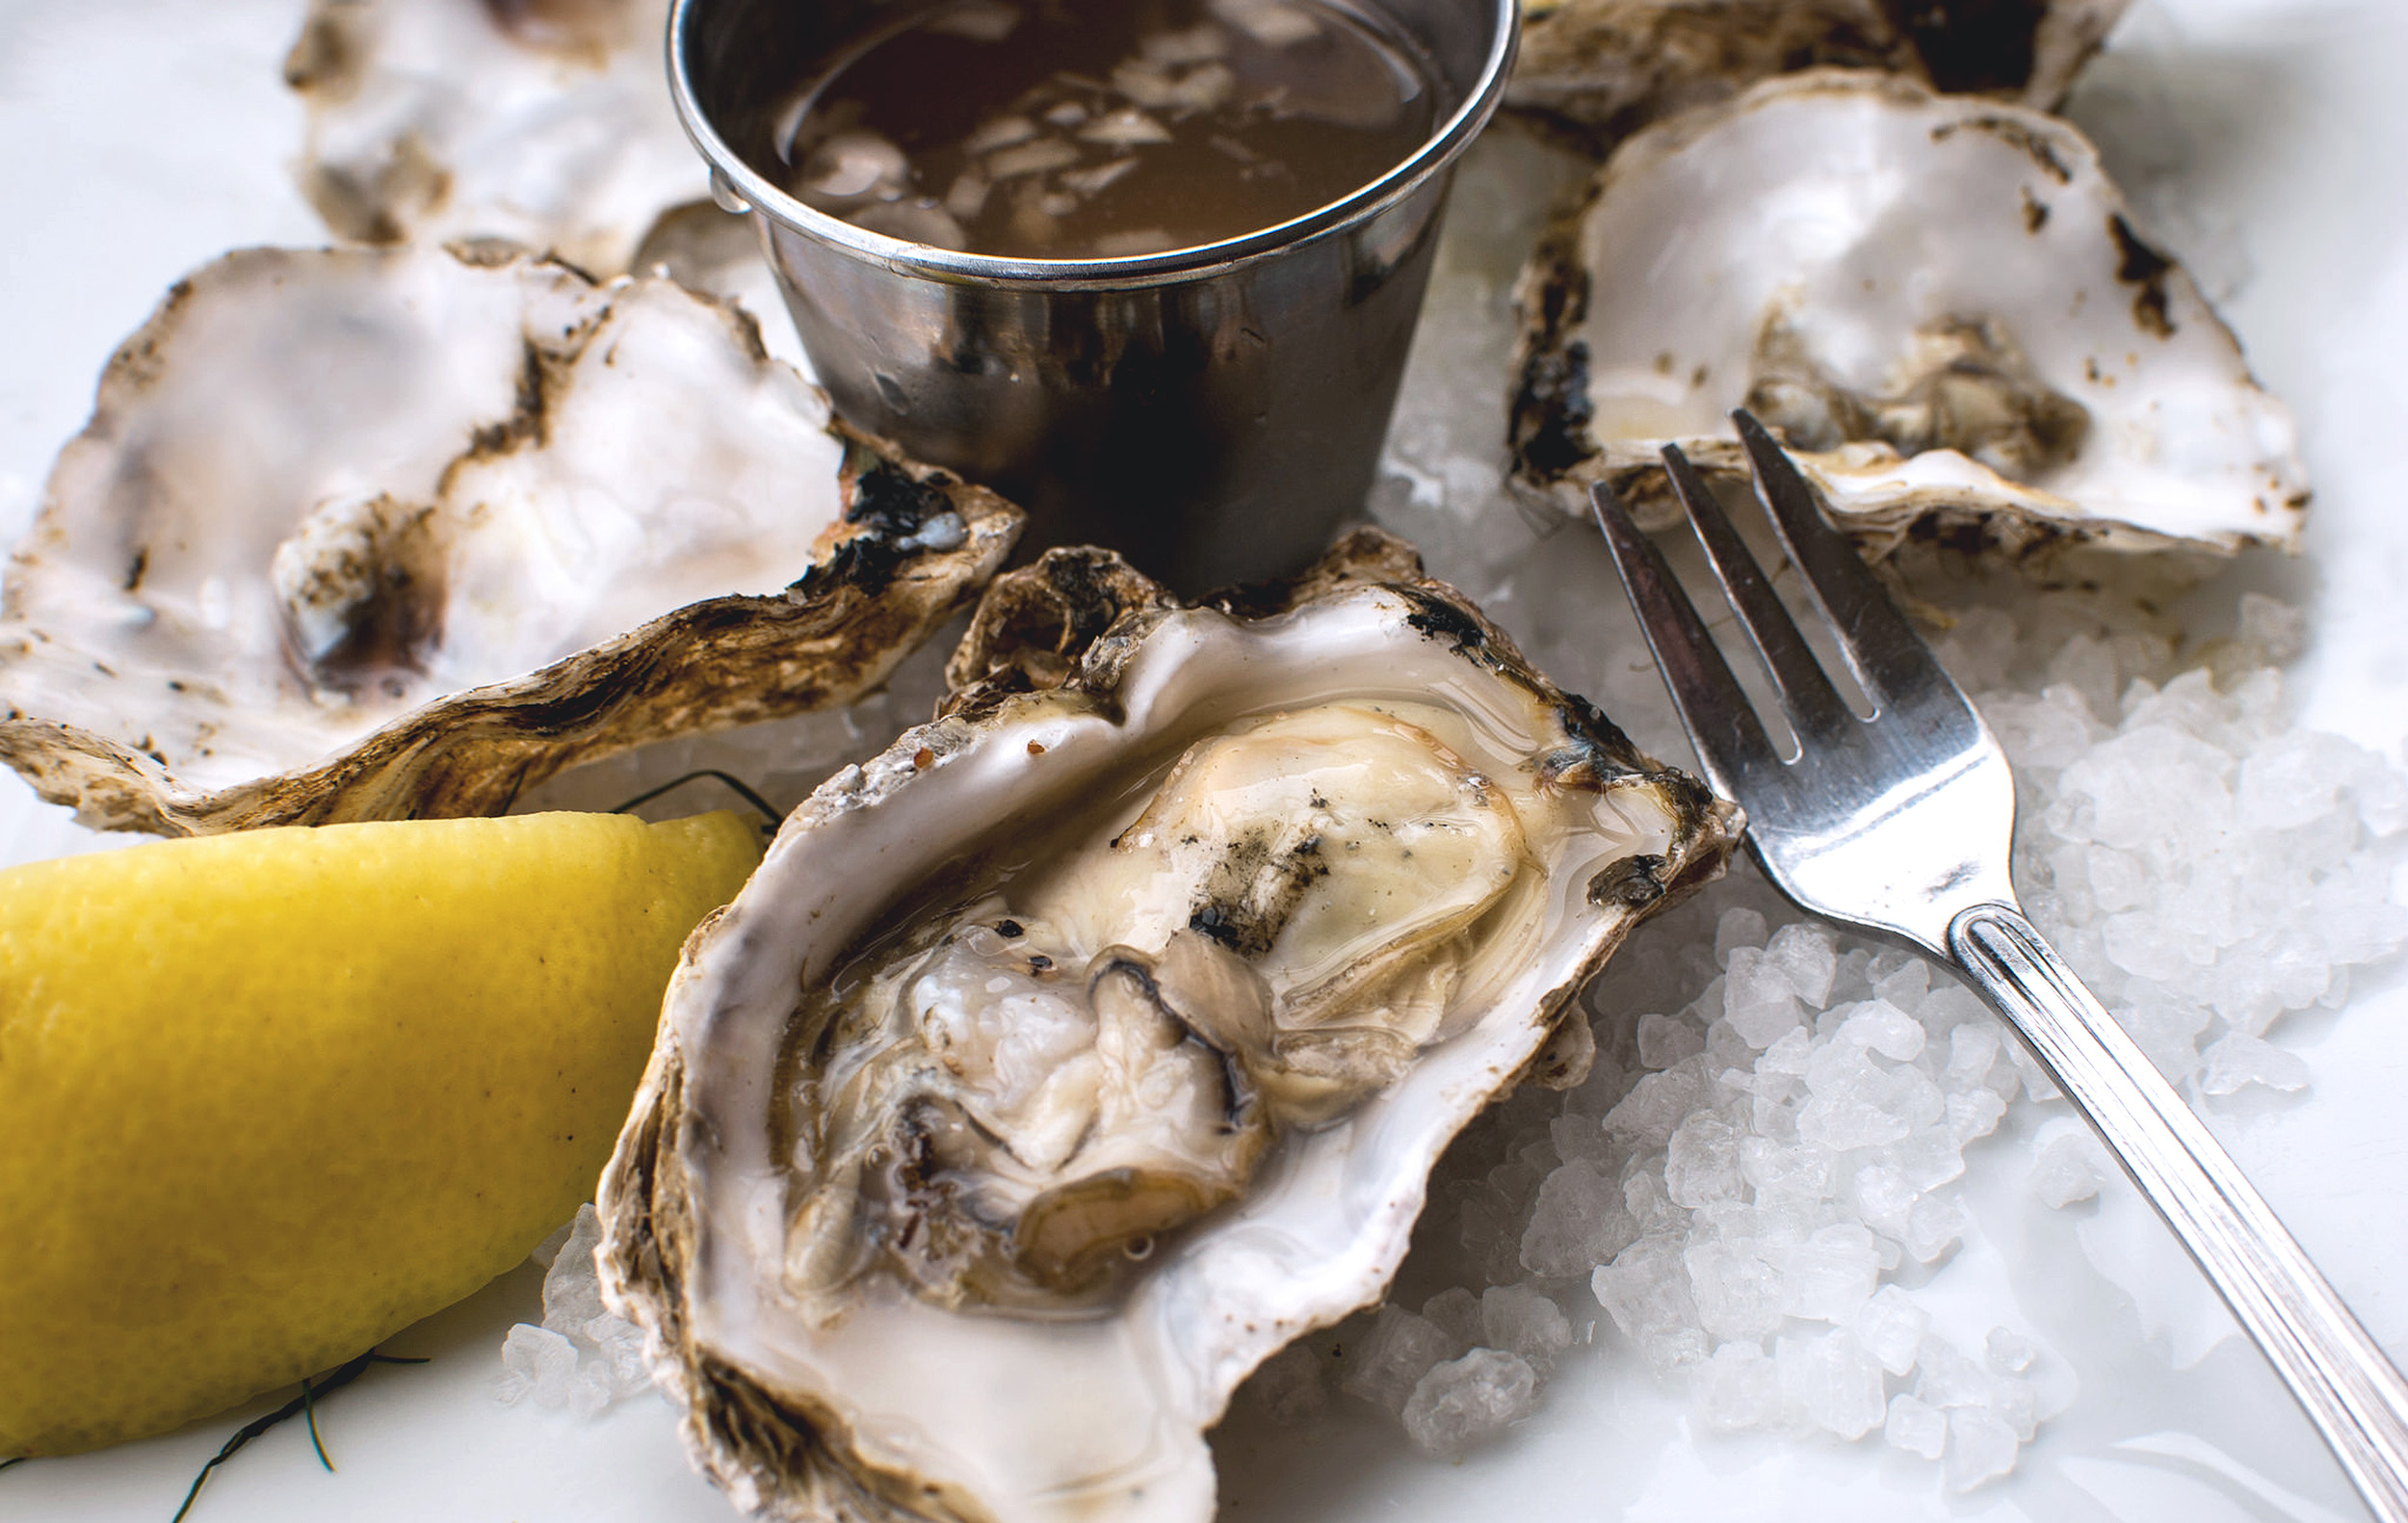 Oysters on ice with a dip, slice of lemon and a fork